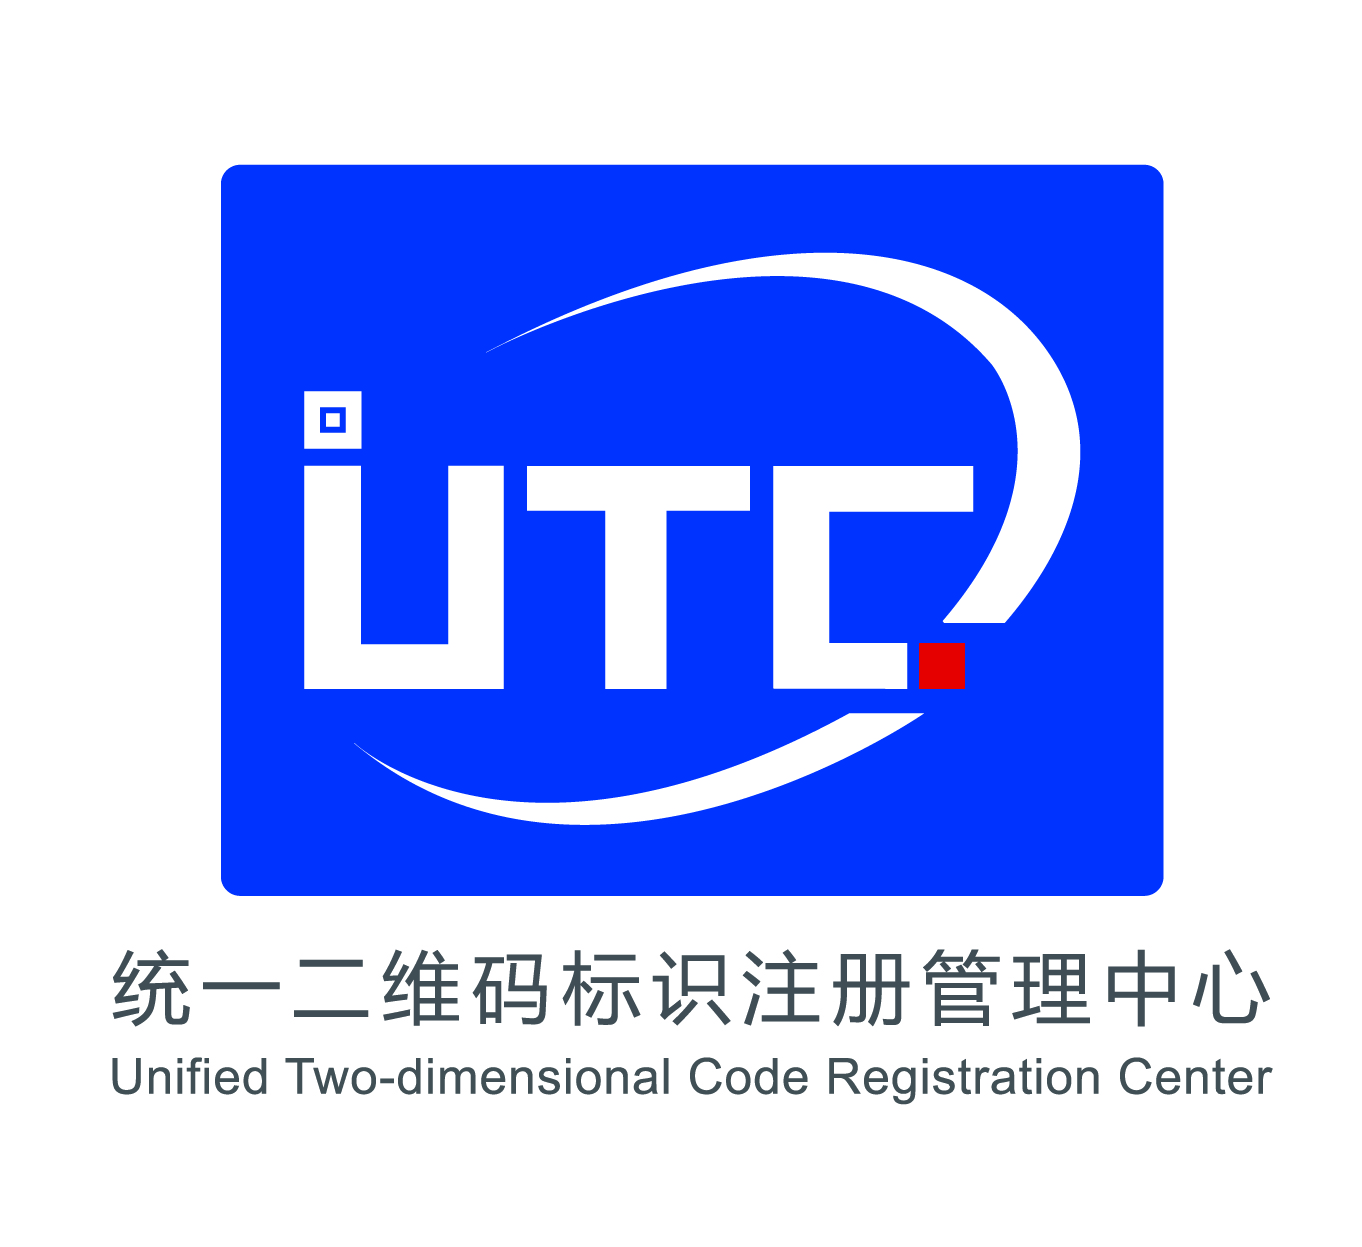 Unified Two-Dimensional Code Registration Center Co., Ltd.